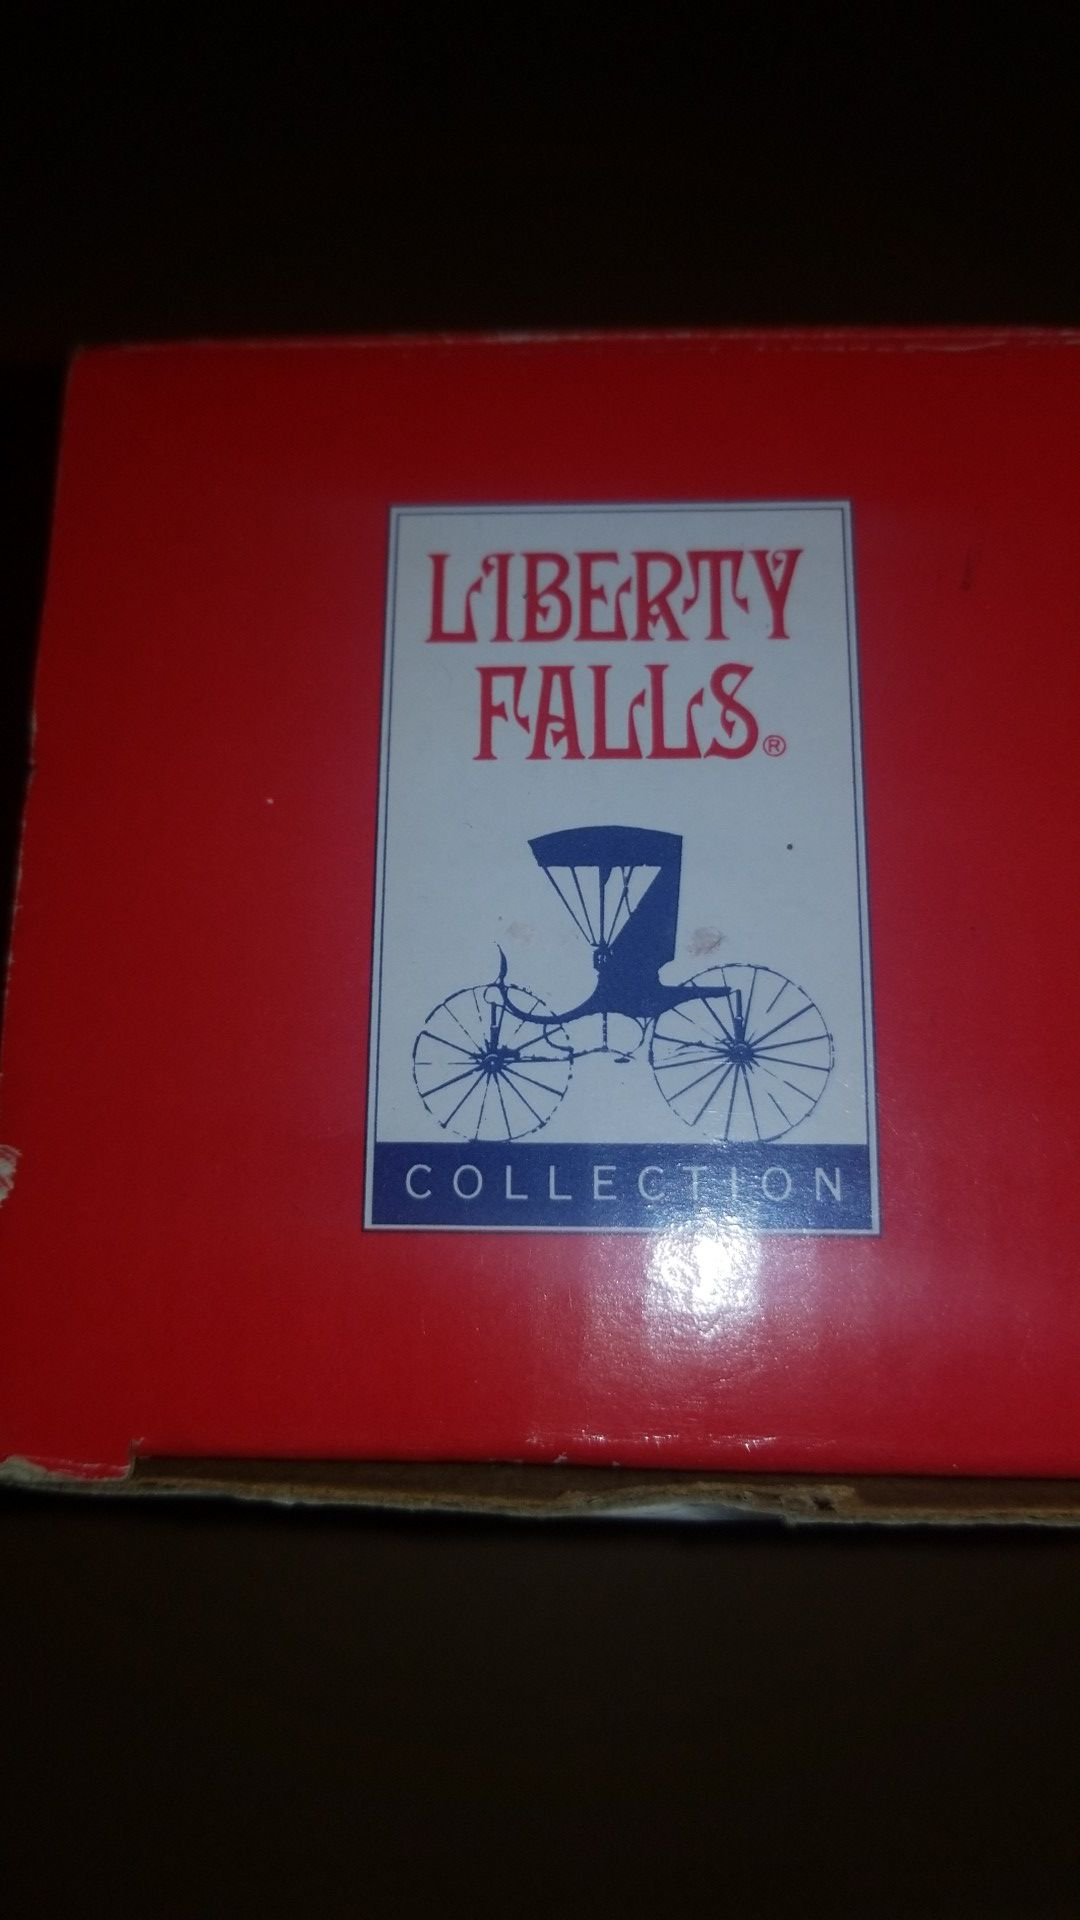 Libery falls collection